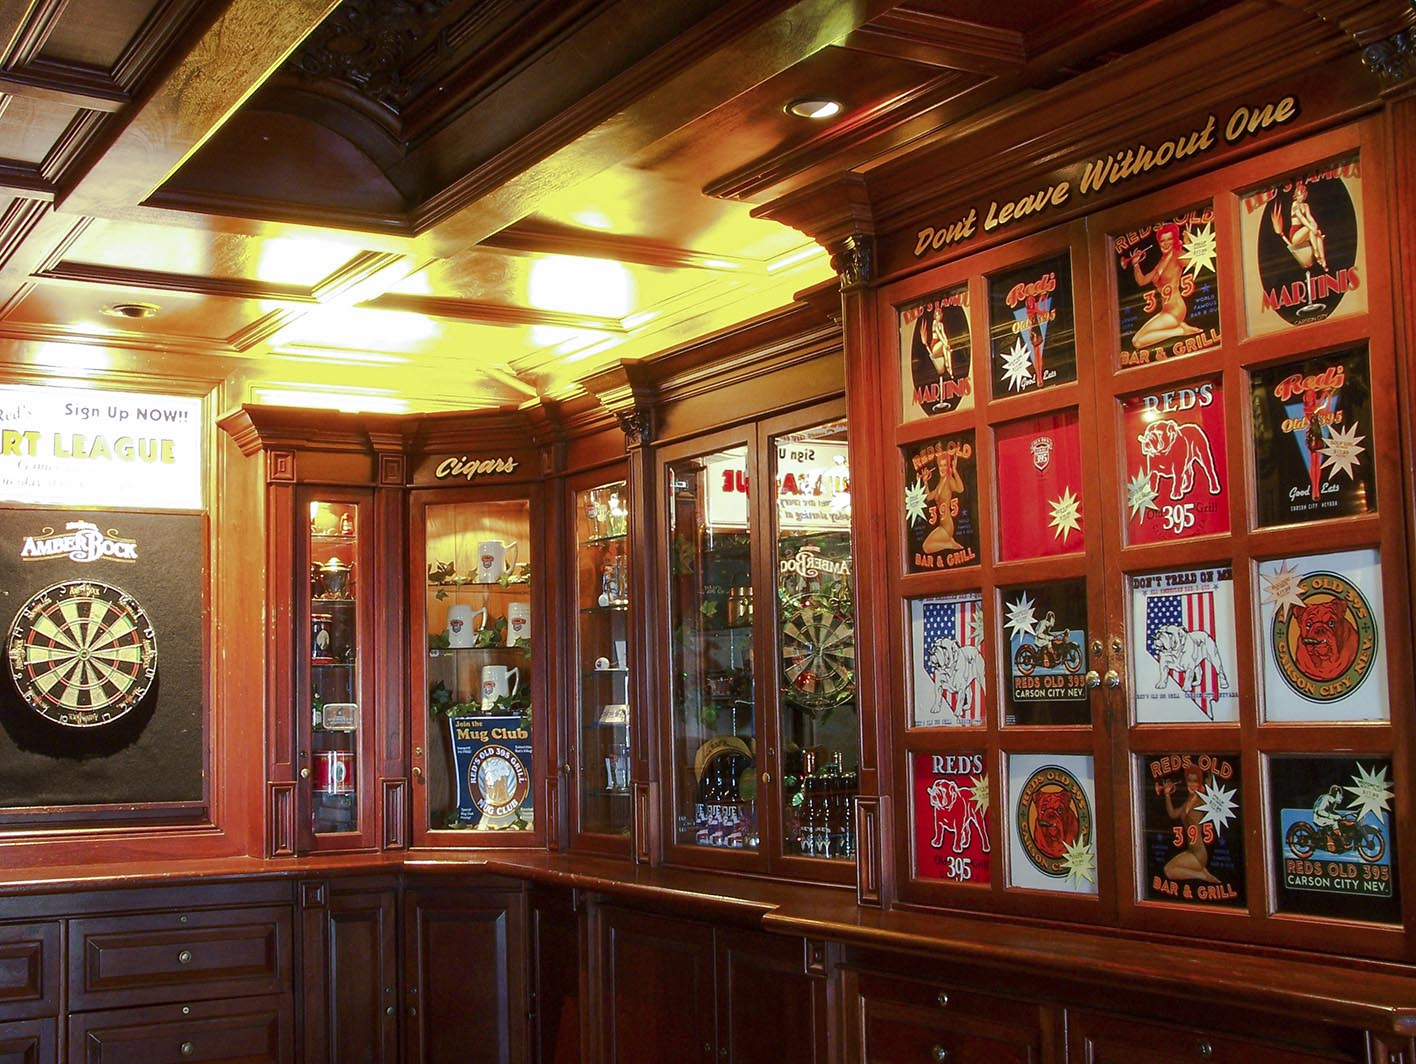 The Churchill Room - The Churchill Room is constructed with 100% Honduras Mahogany. All of the hats, T-shirts, pints glasses and such are available for sale. We also sell a nice selection of cigars.